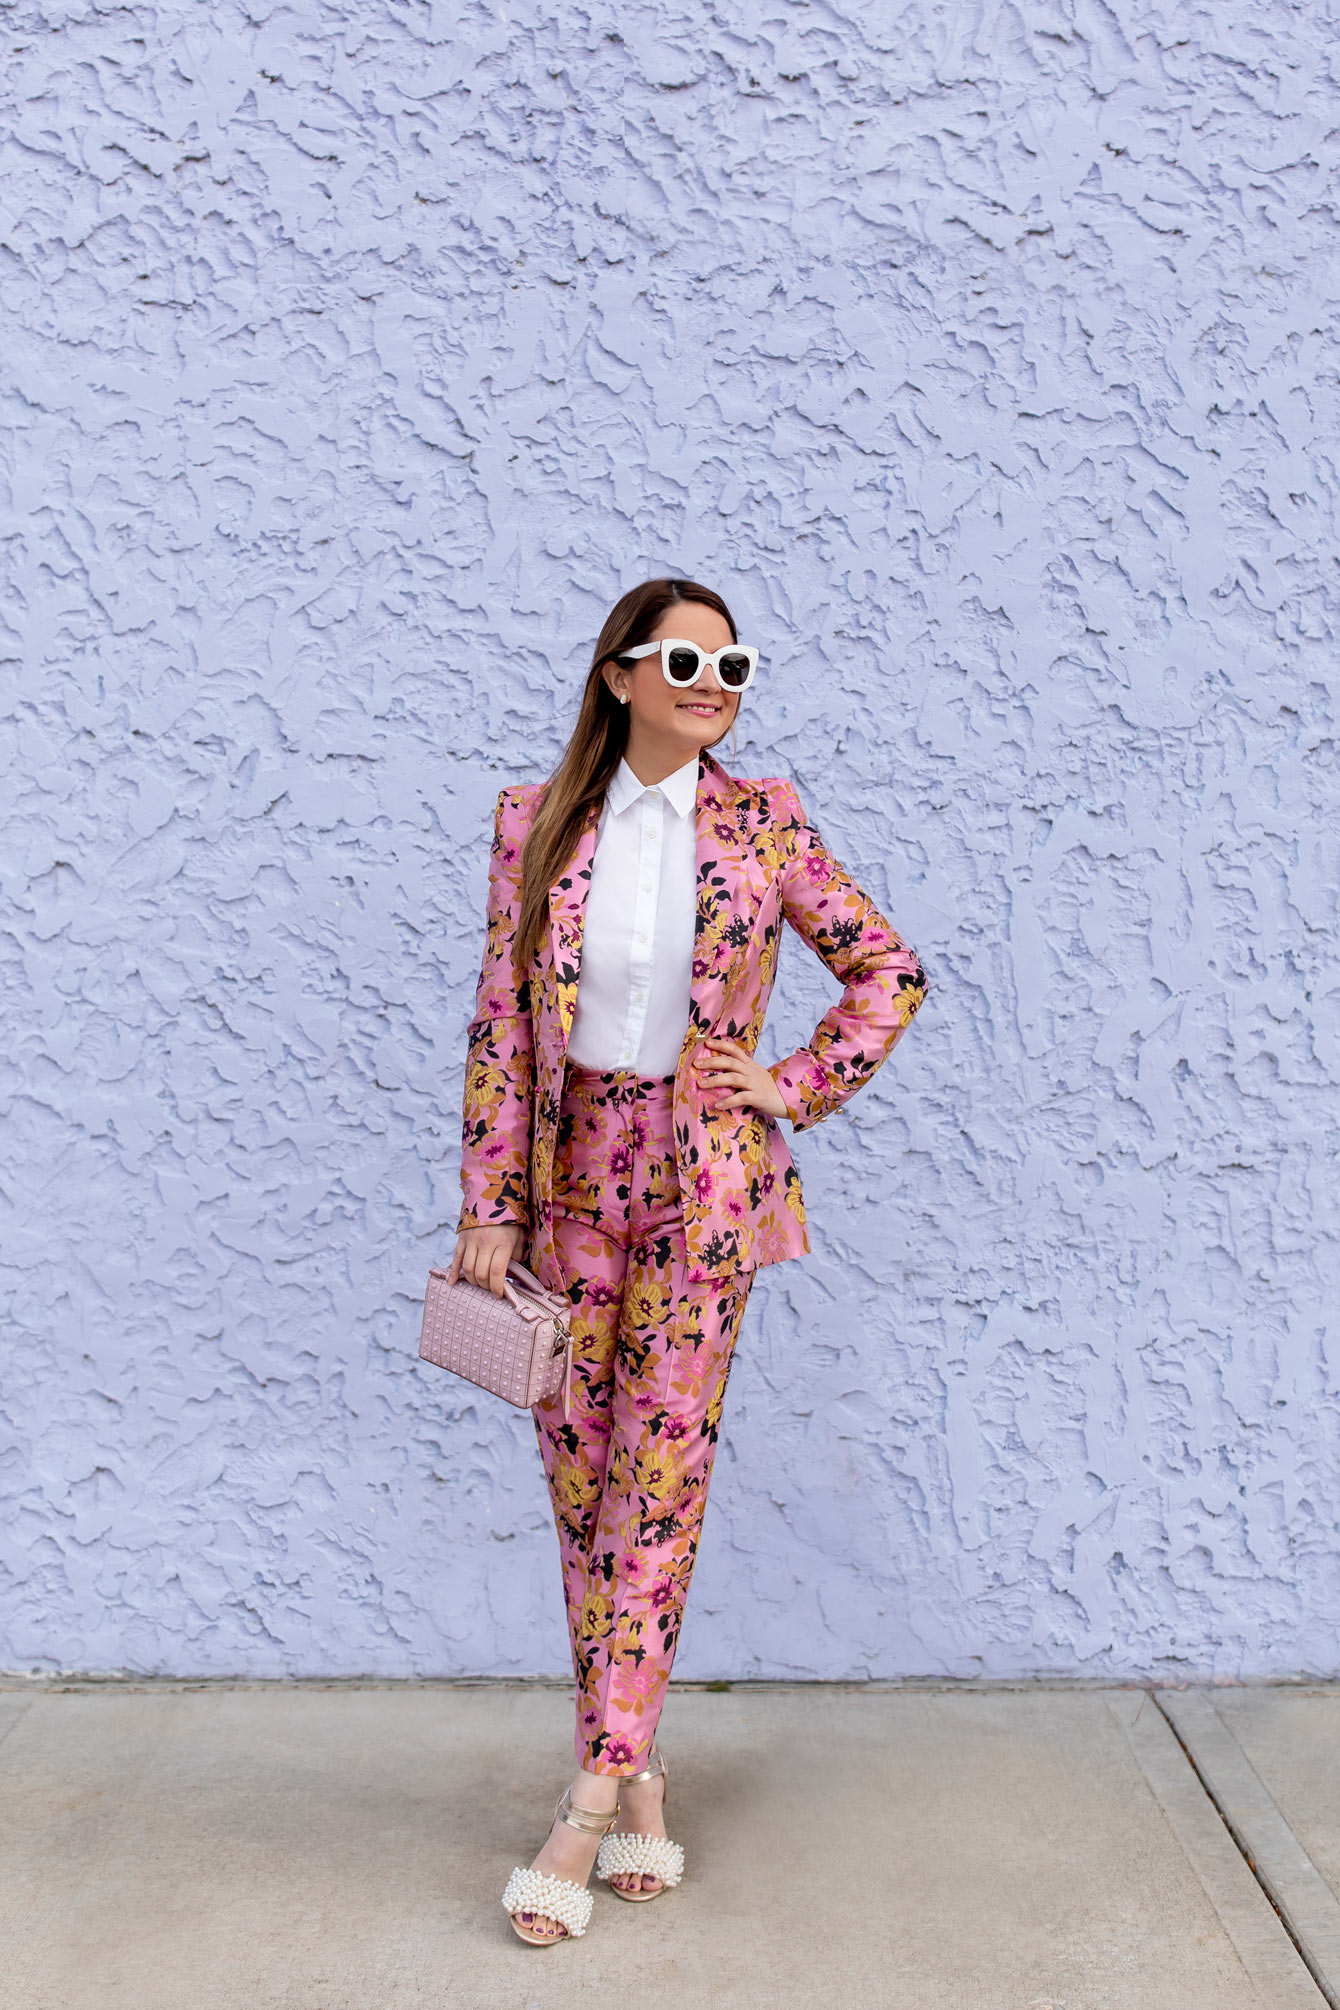 River Island Pink Floral Suit